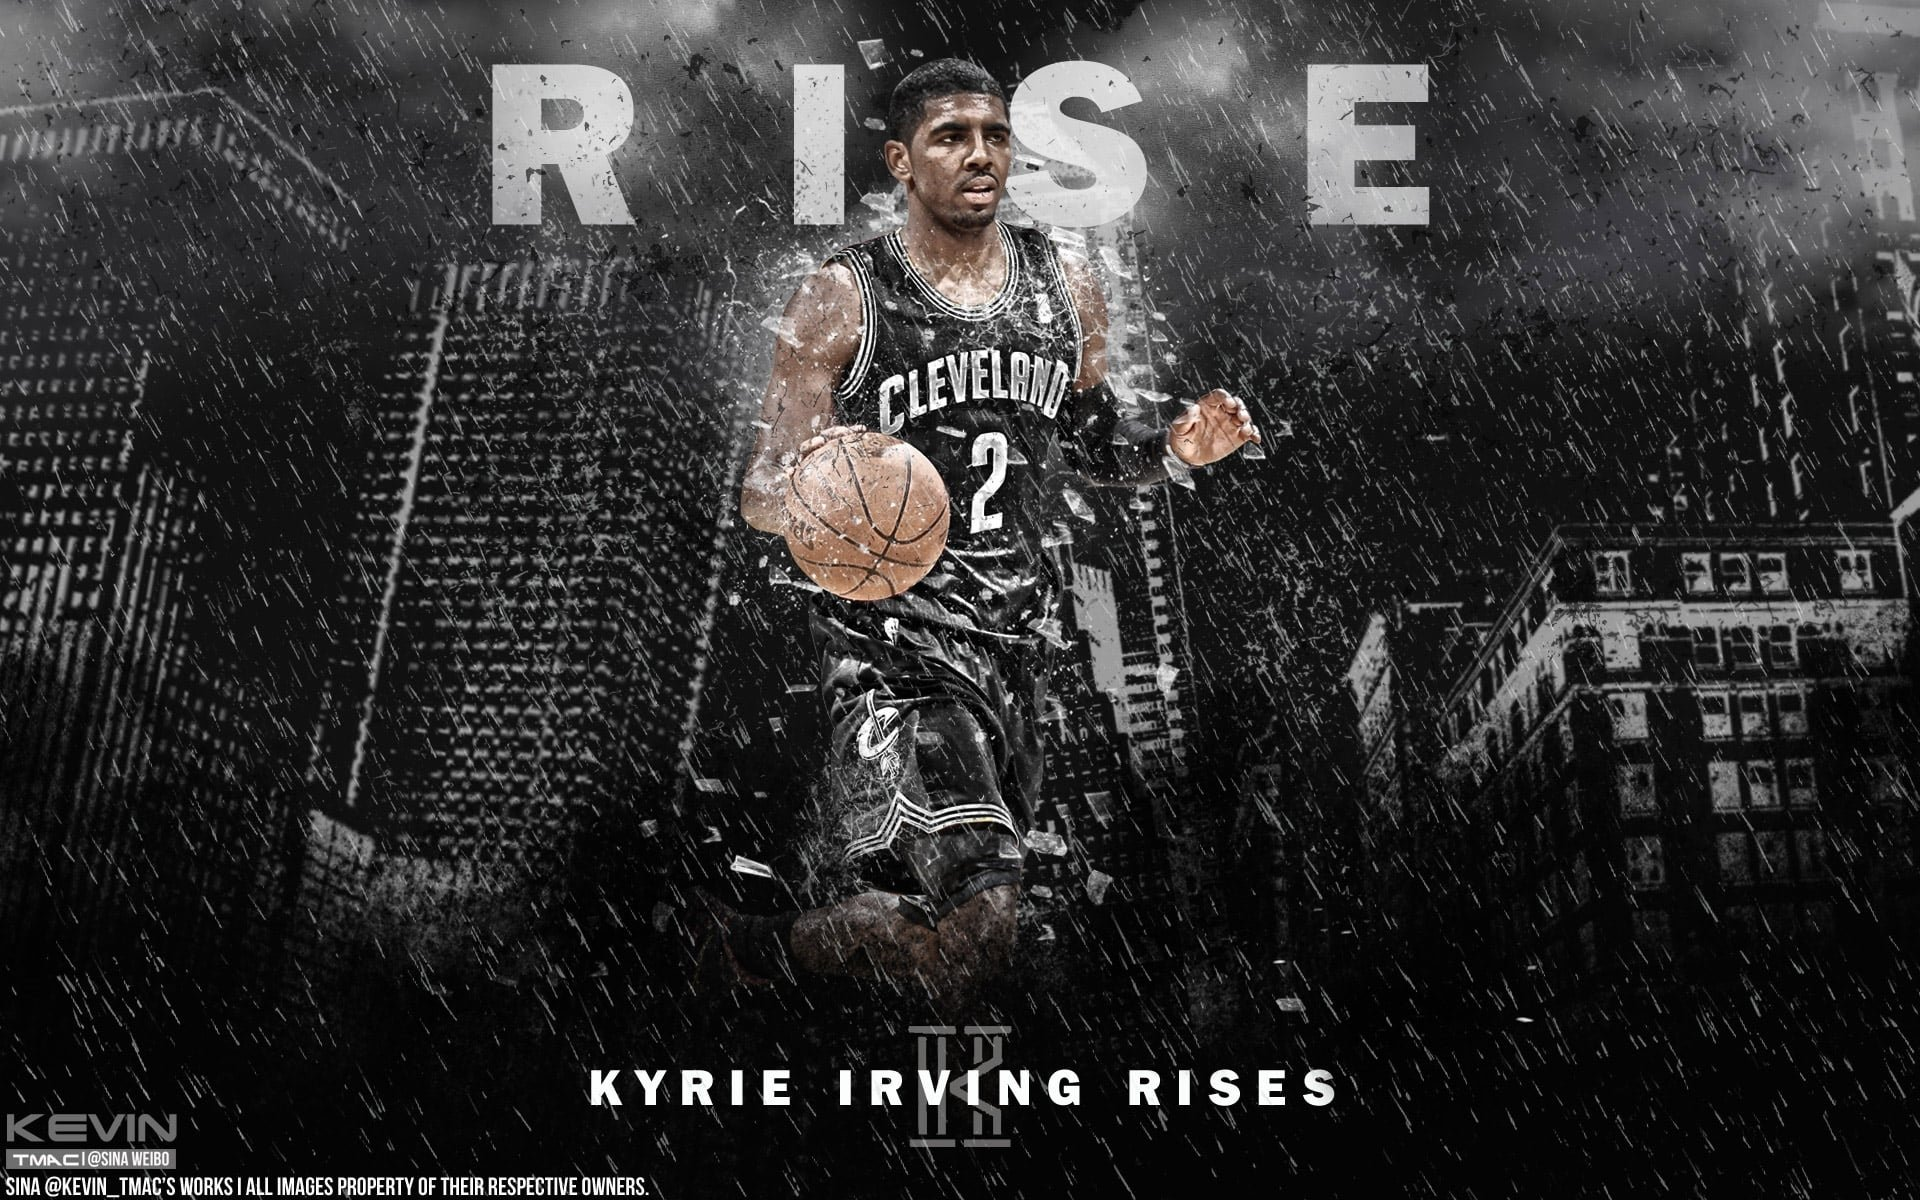 Hd wallpaper kyrie irving - Hd Wallpaper Background Id 770573 1920x1200 Sports Kyrie Irving